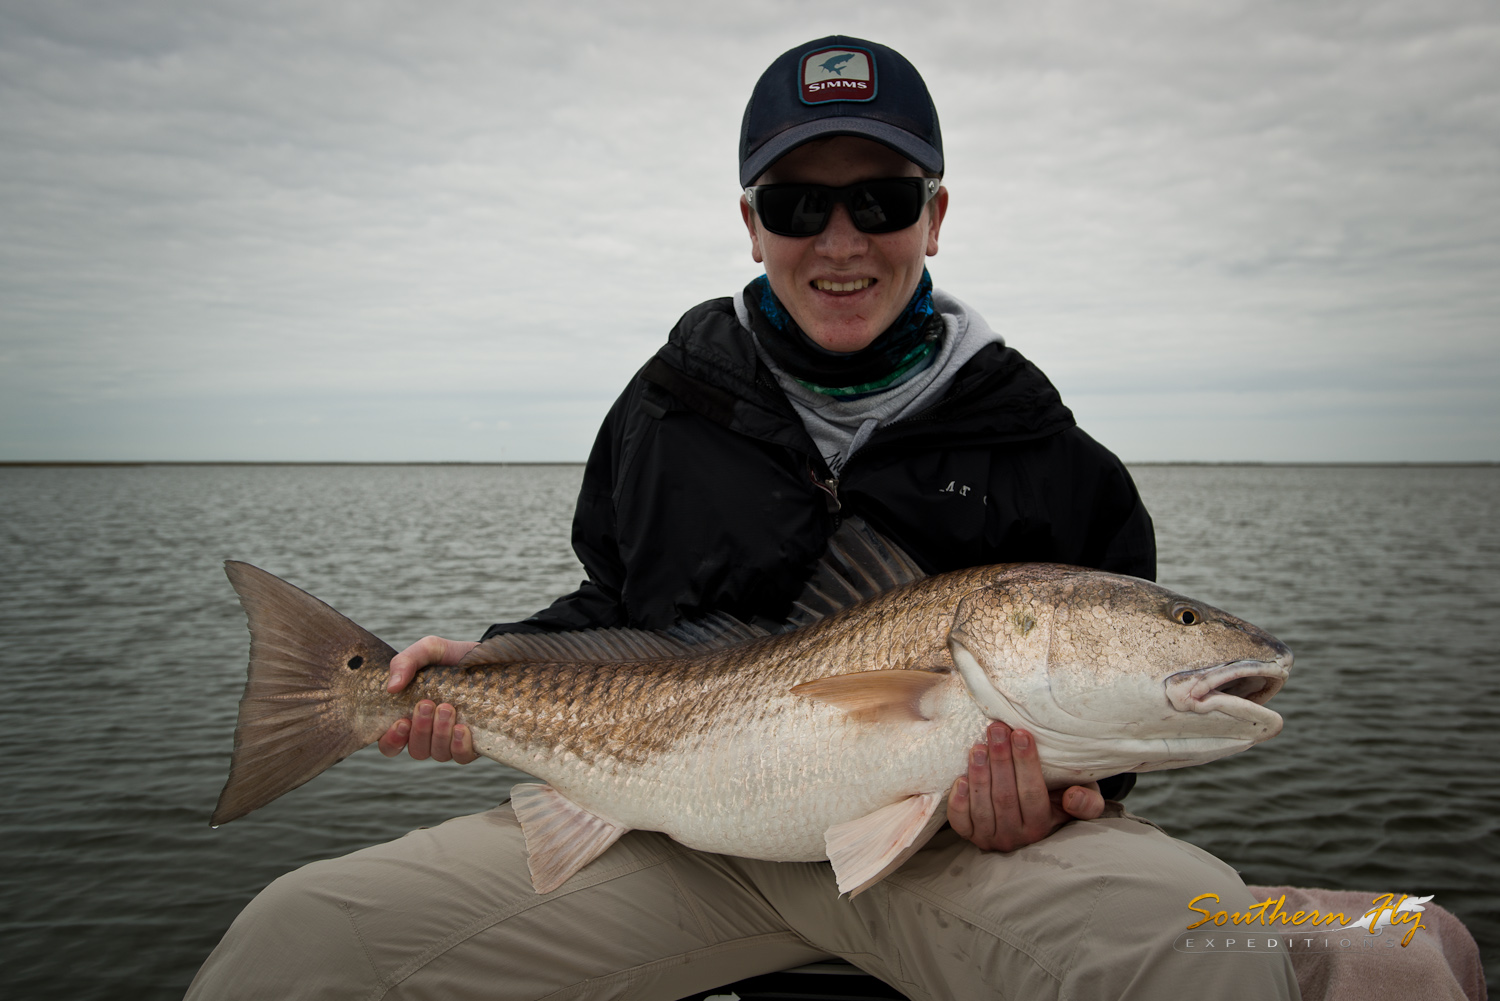 2019-03-08-09_SouthernFlyExpeditions_NewOrleans_TimFrank&Carson-1.jpg